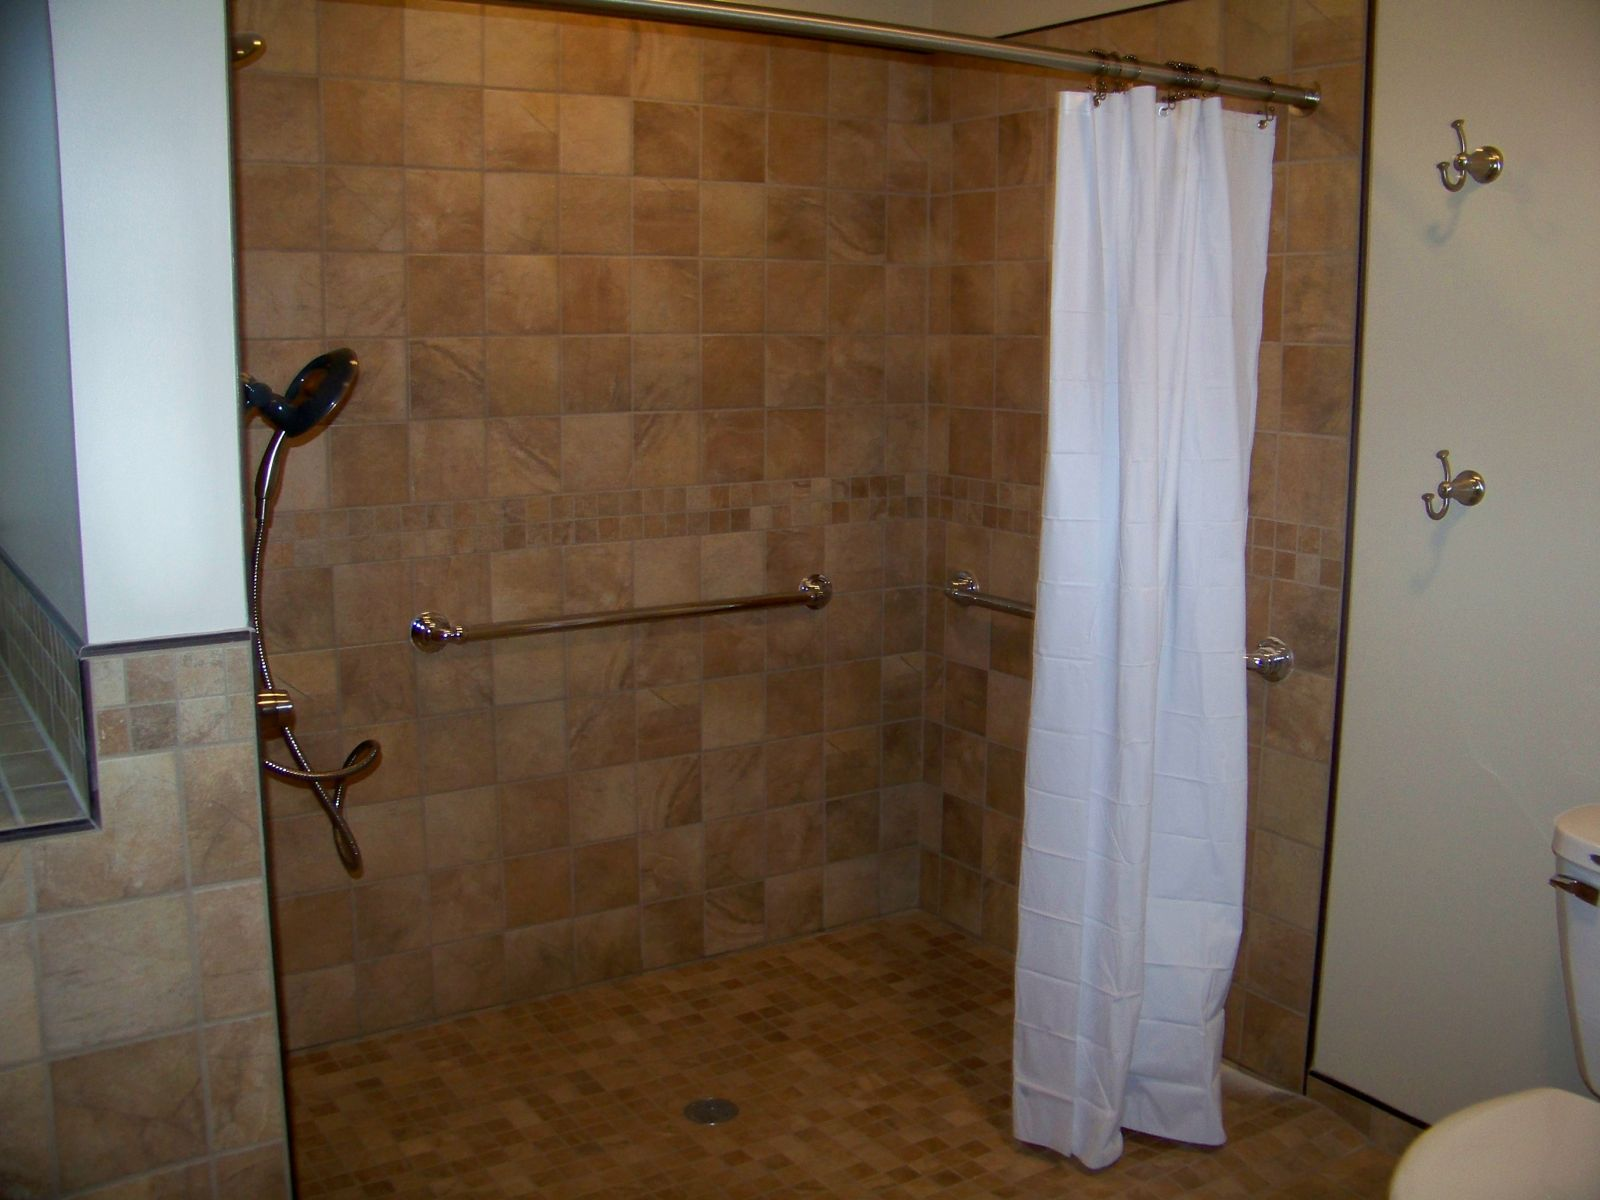 we install quite a few curbless showers most of the showers we install are tile but we do install prefab showers as well i like the prefab showers when